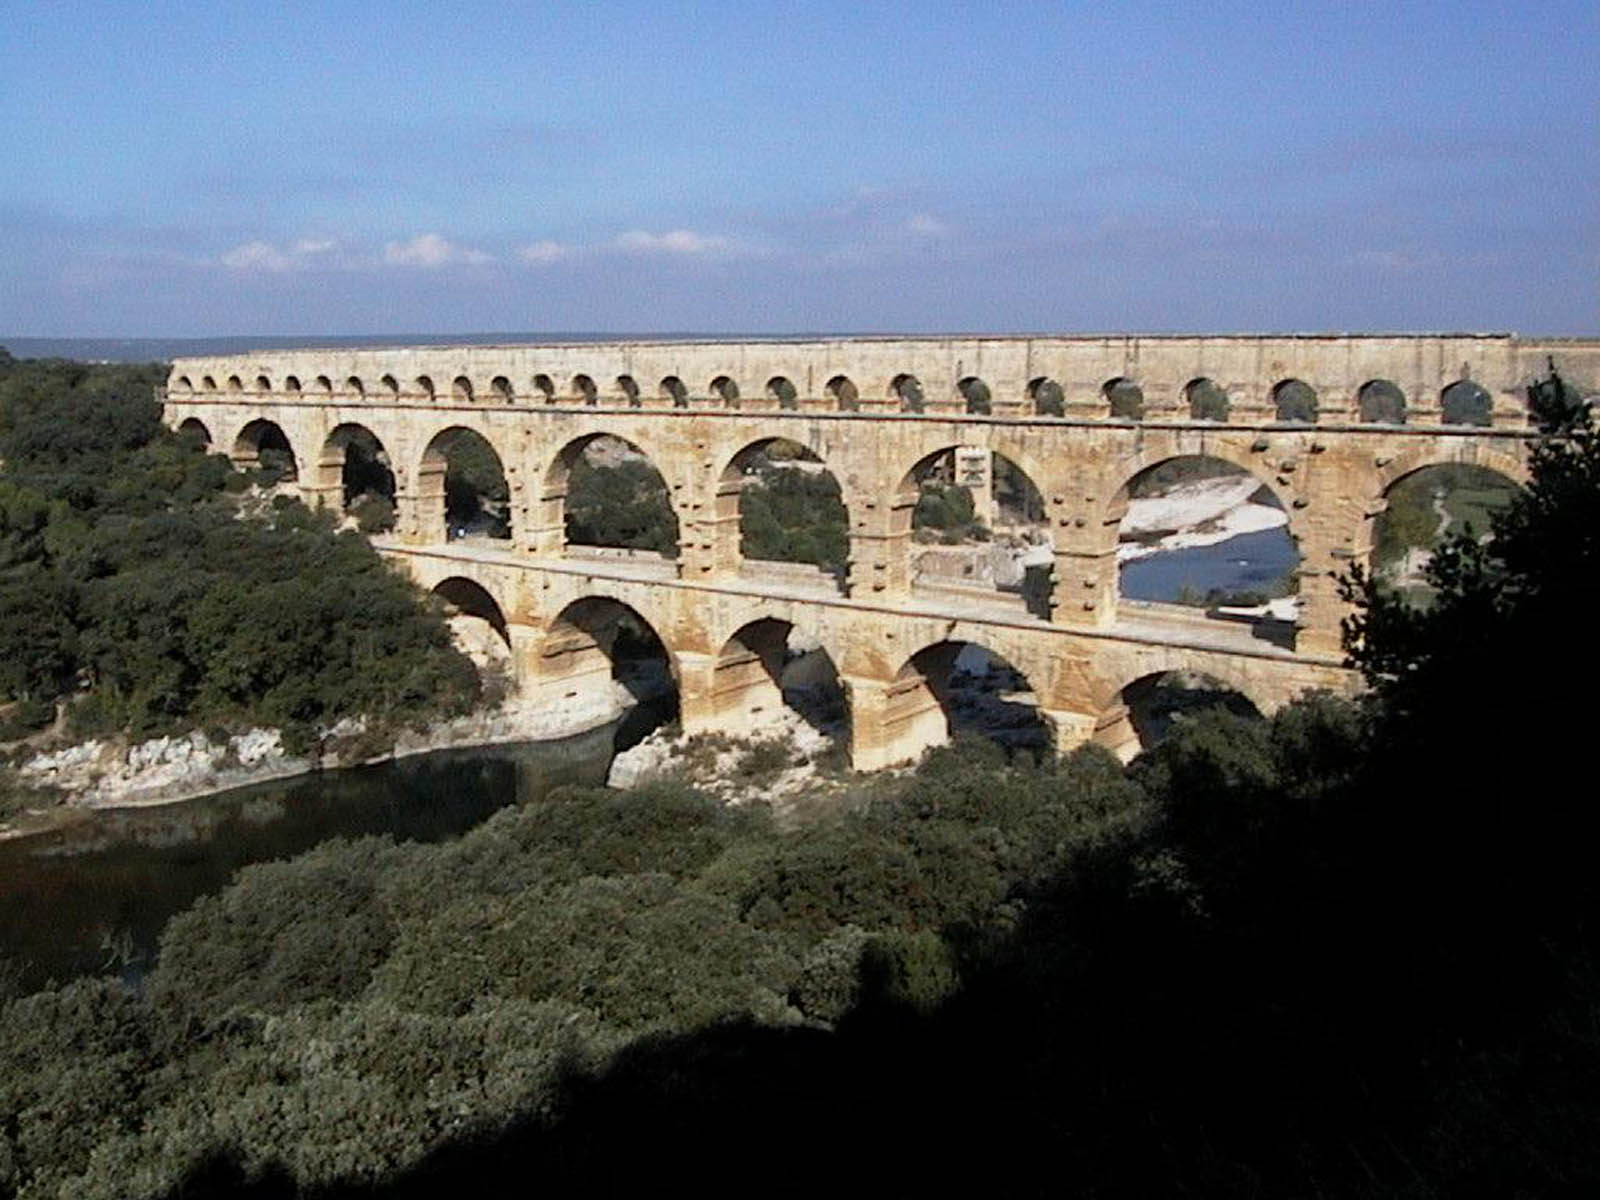 home design free download windows 8 with Pont Du Gard Roman Aqueduct on Iphone Logo 527 likewise 100 Cat Kitten Facebook Cover Photo furthermore Wallpapers besides Tornado further Wallpapers.